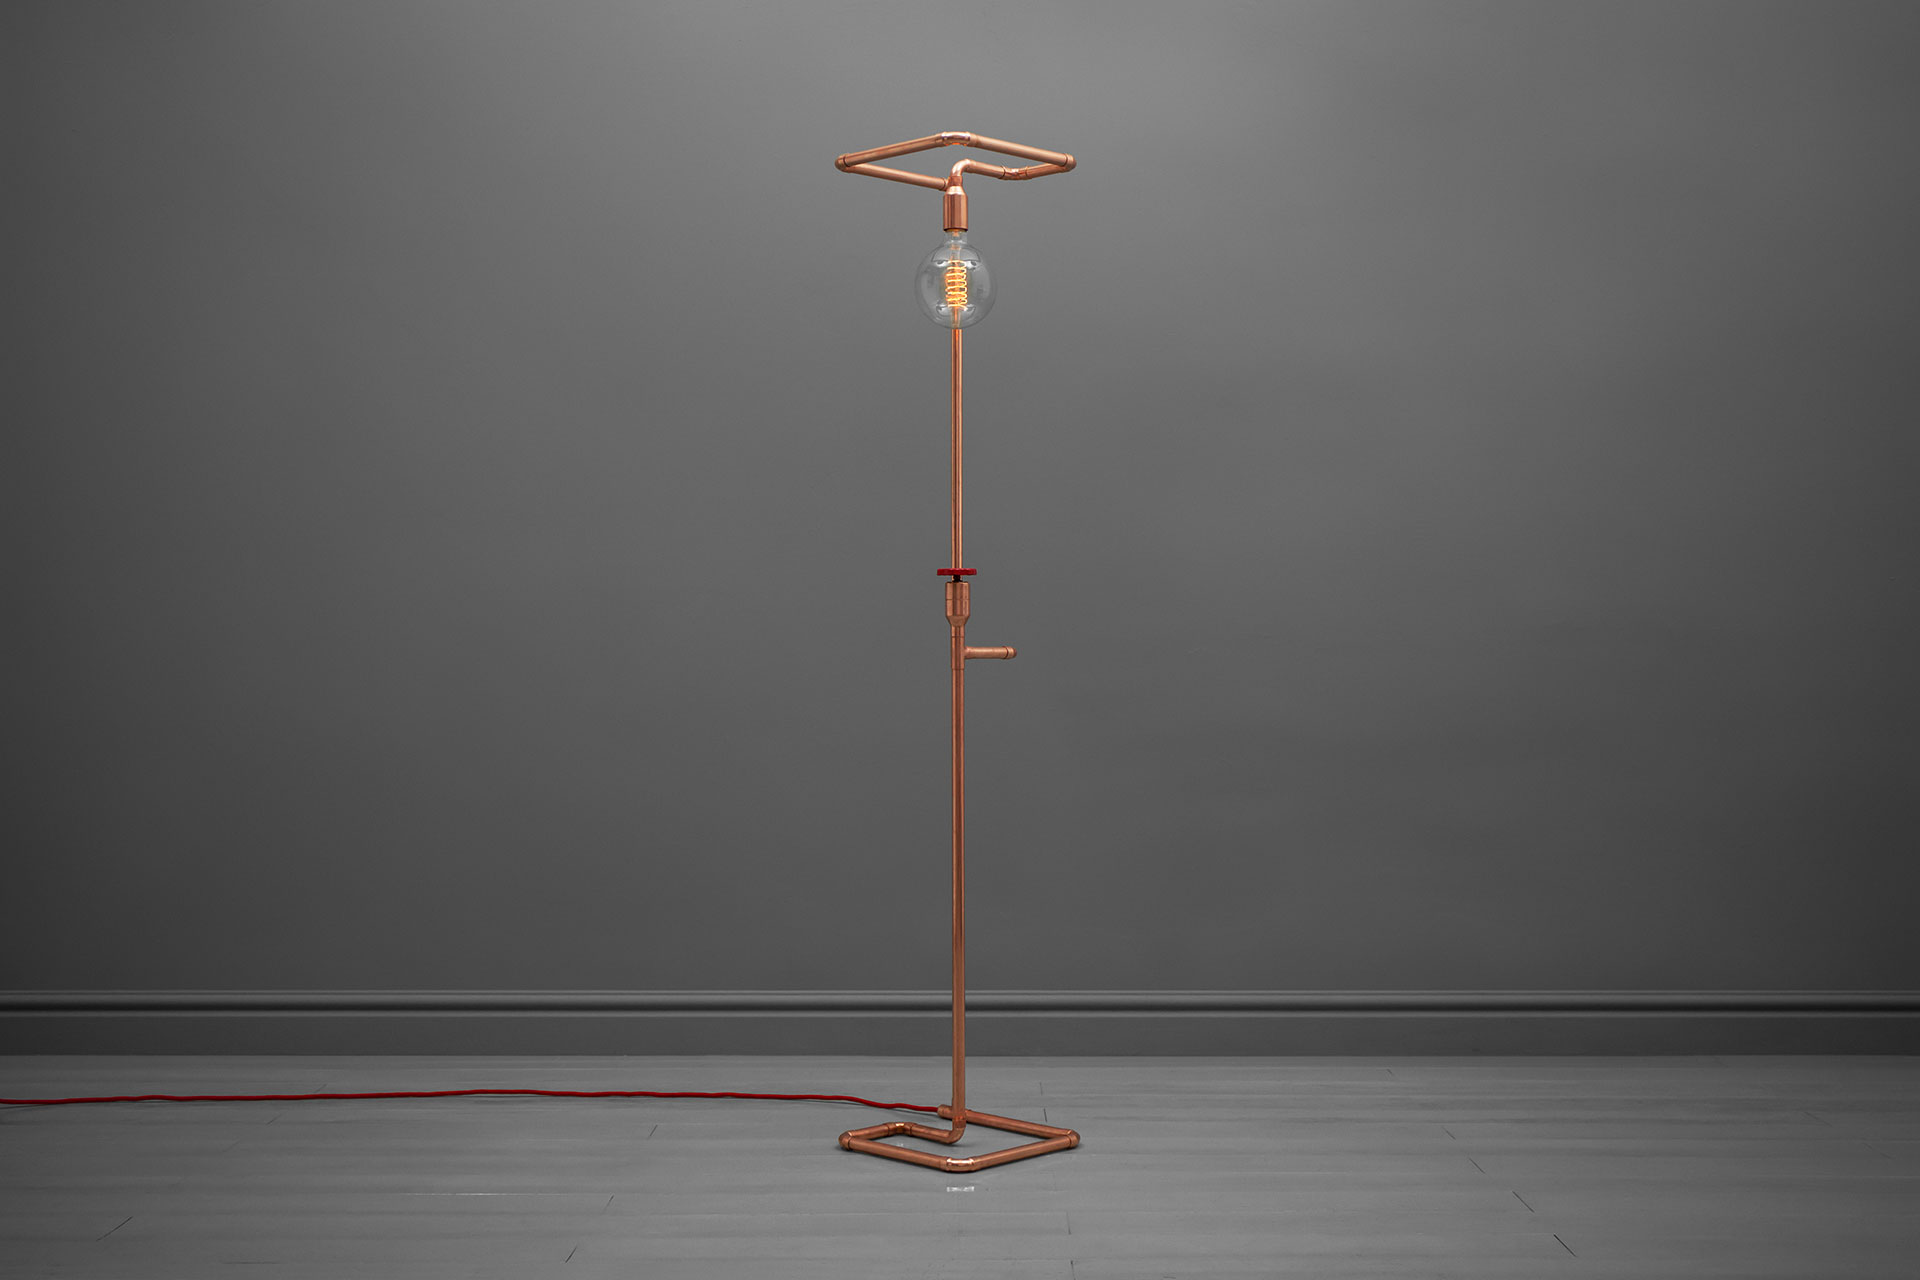 Unusual floor lamp in trendy copper or modern brass inspired by industrial pipe design